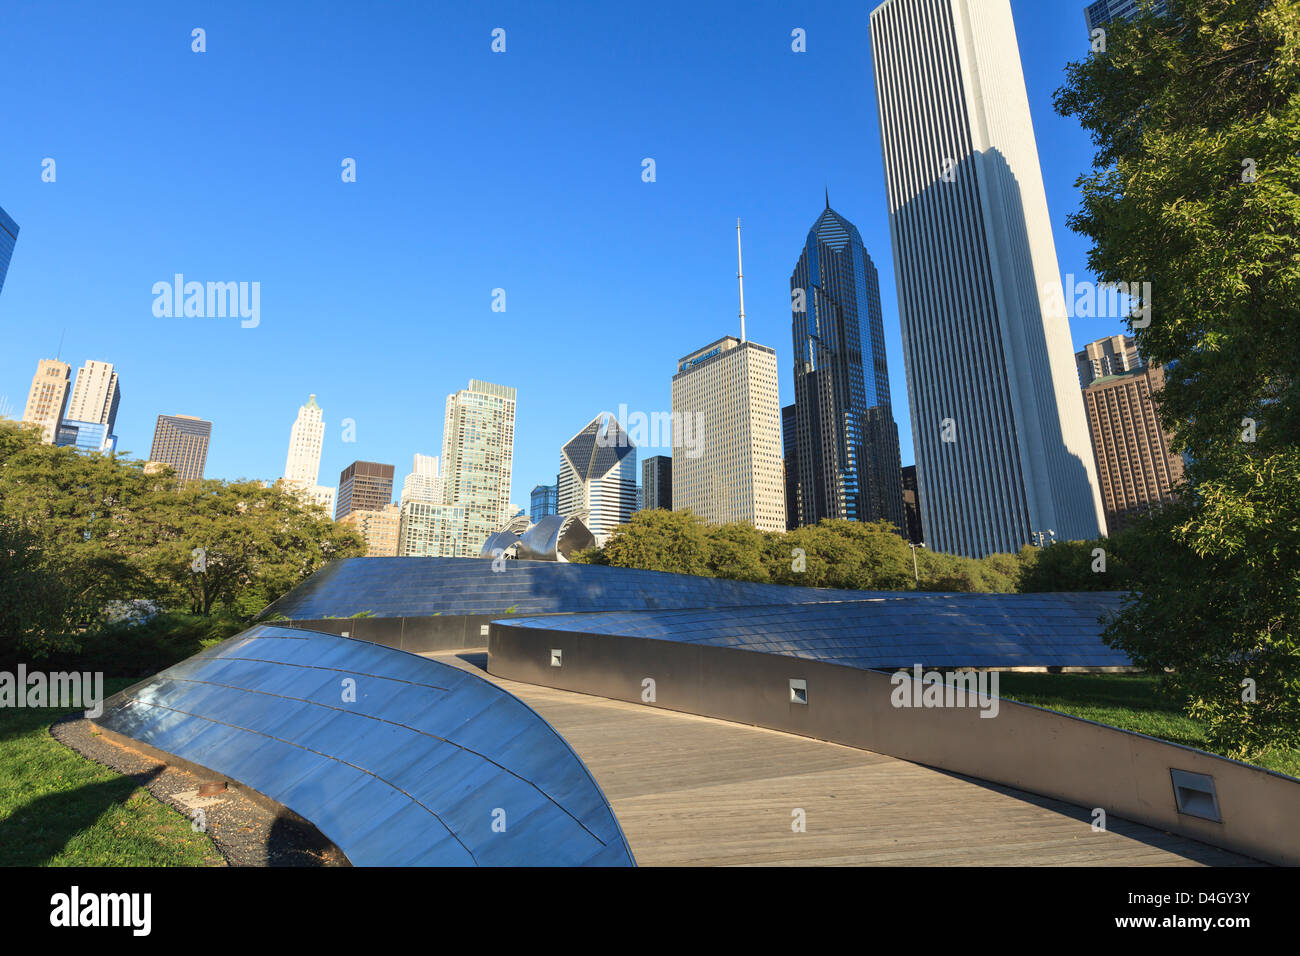 Cityscape from the BP Pedestrian Bridge designed by Frank Gehry, Chicago, Illinois, USA - Stock Image